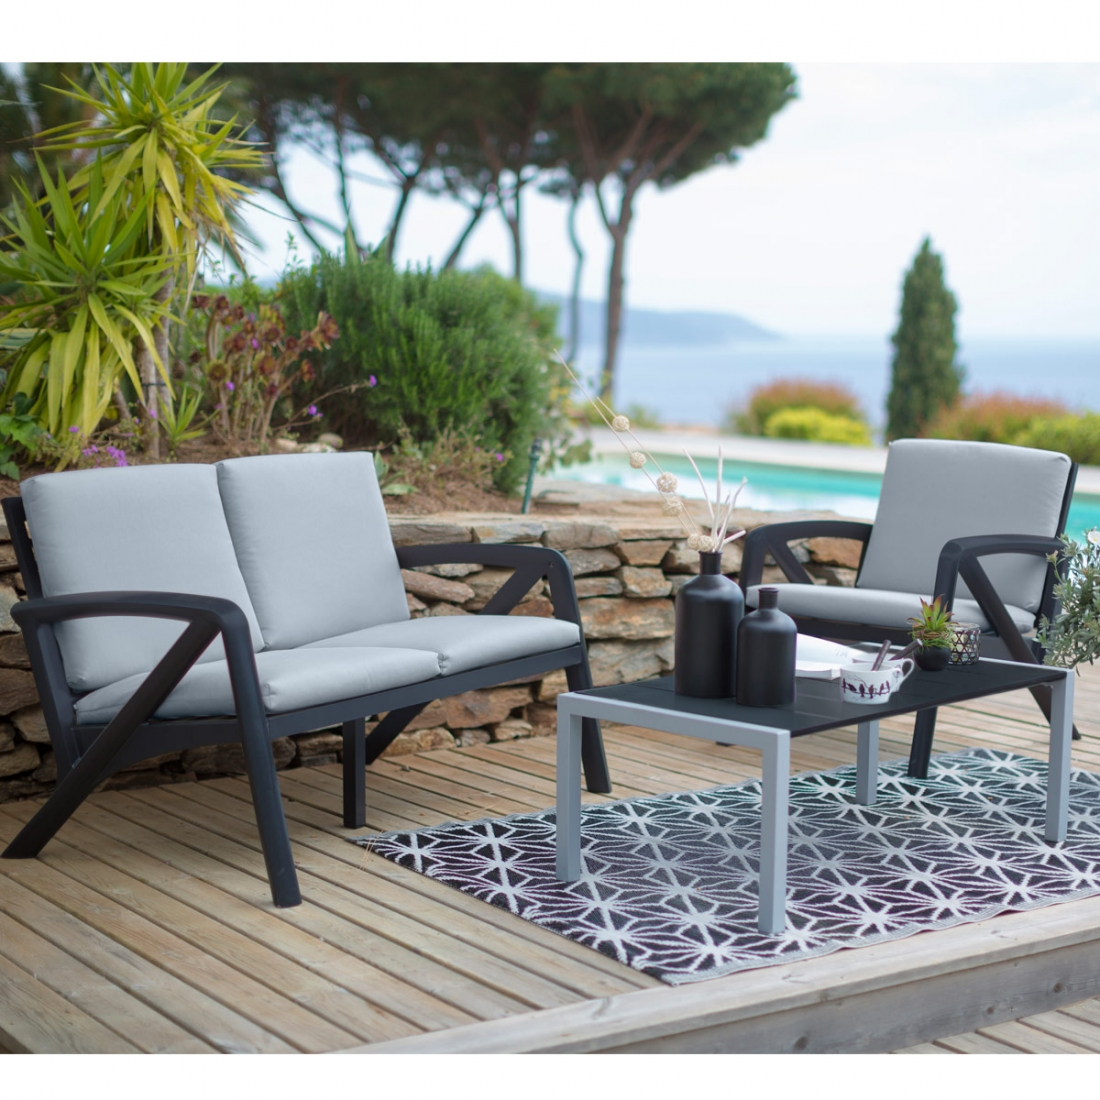 Salon de jardin lounge sunday barcelone design grosfillex for Salon de jardin grofilex